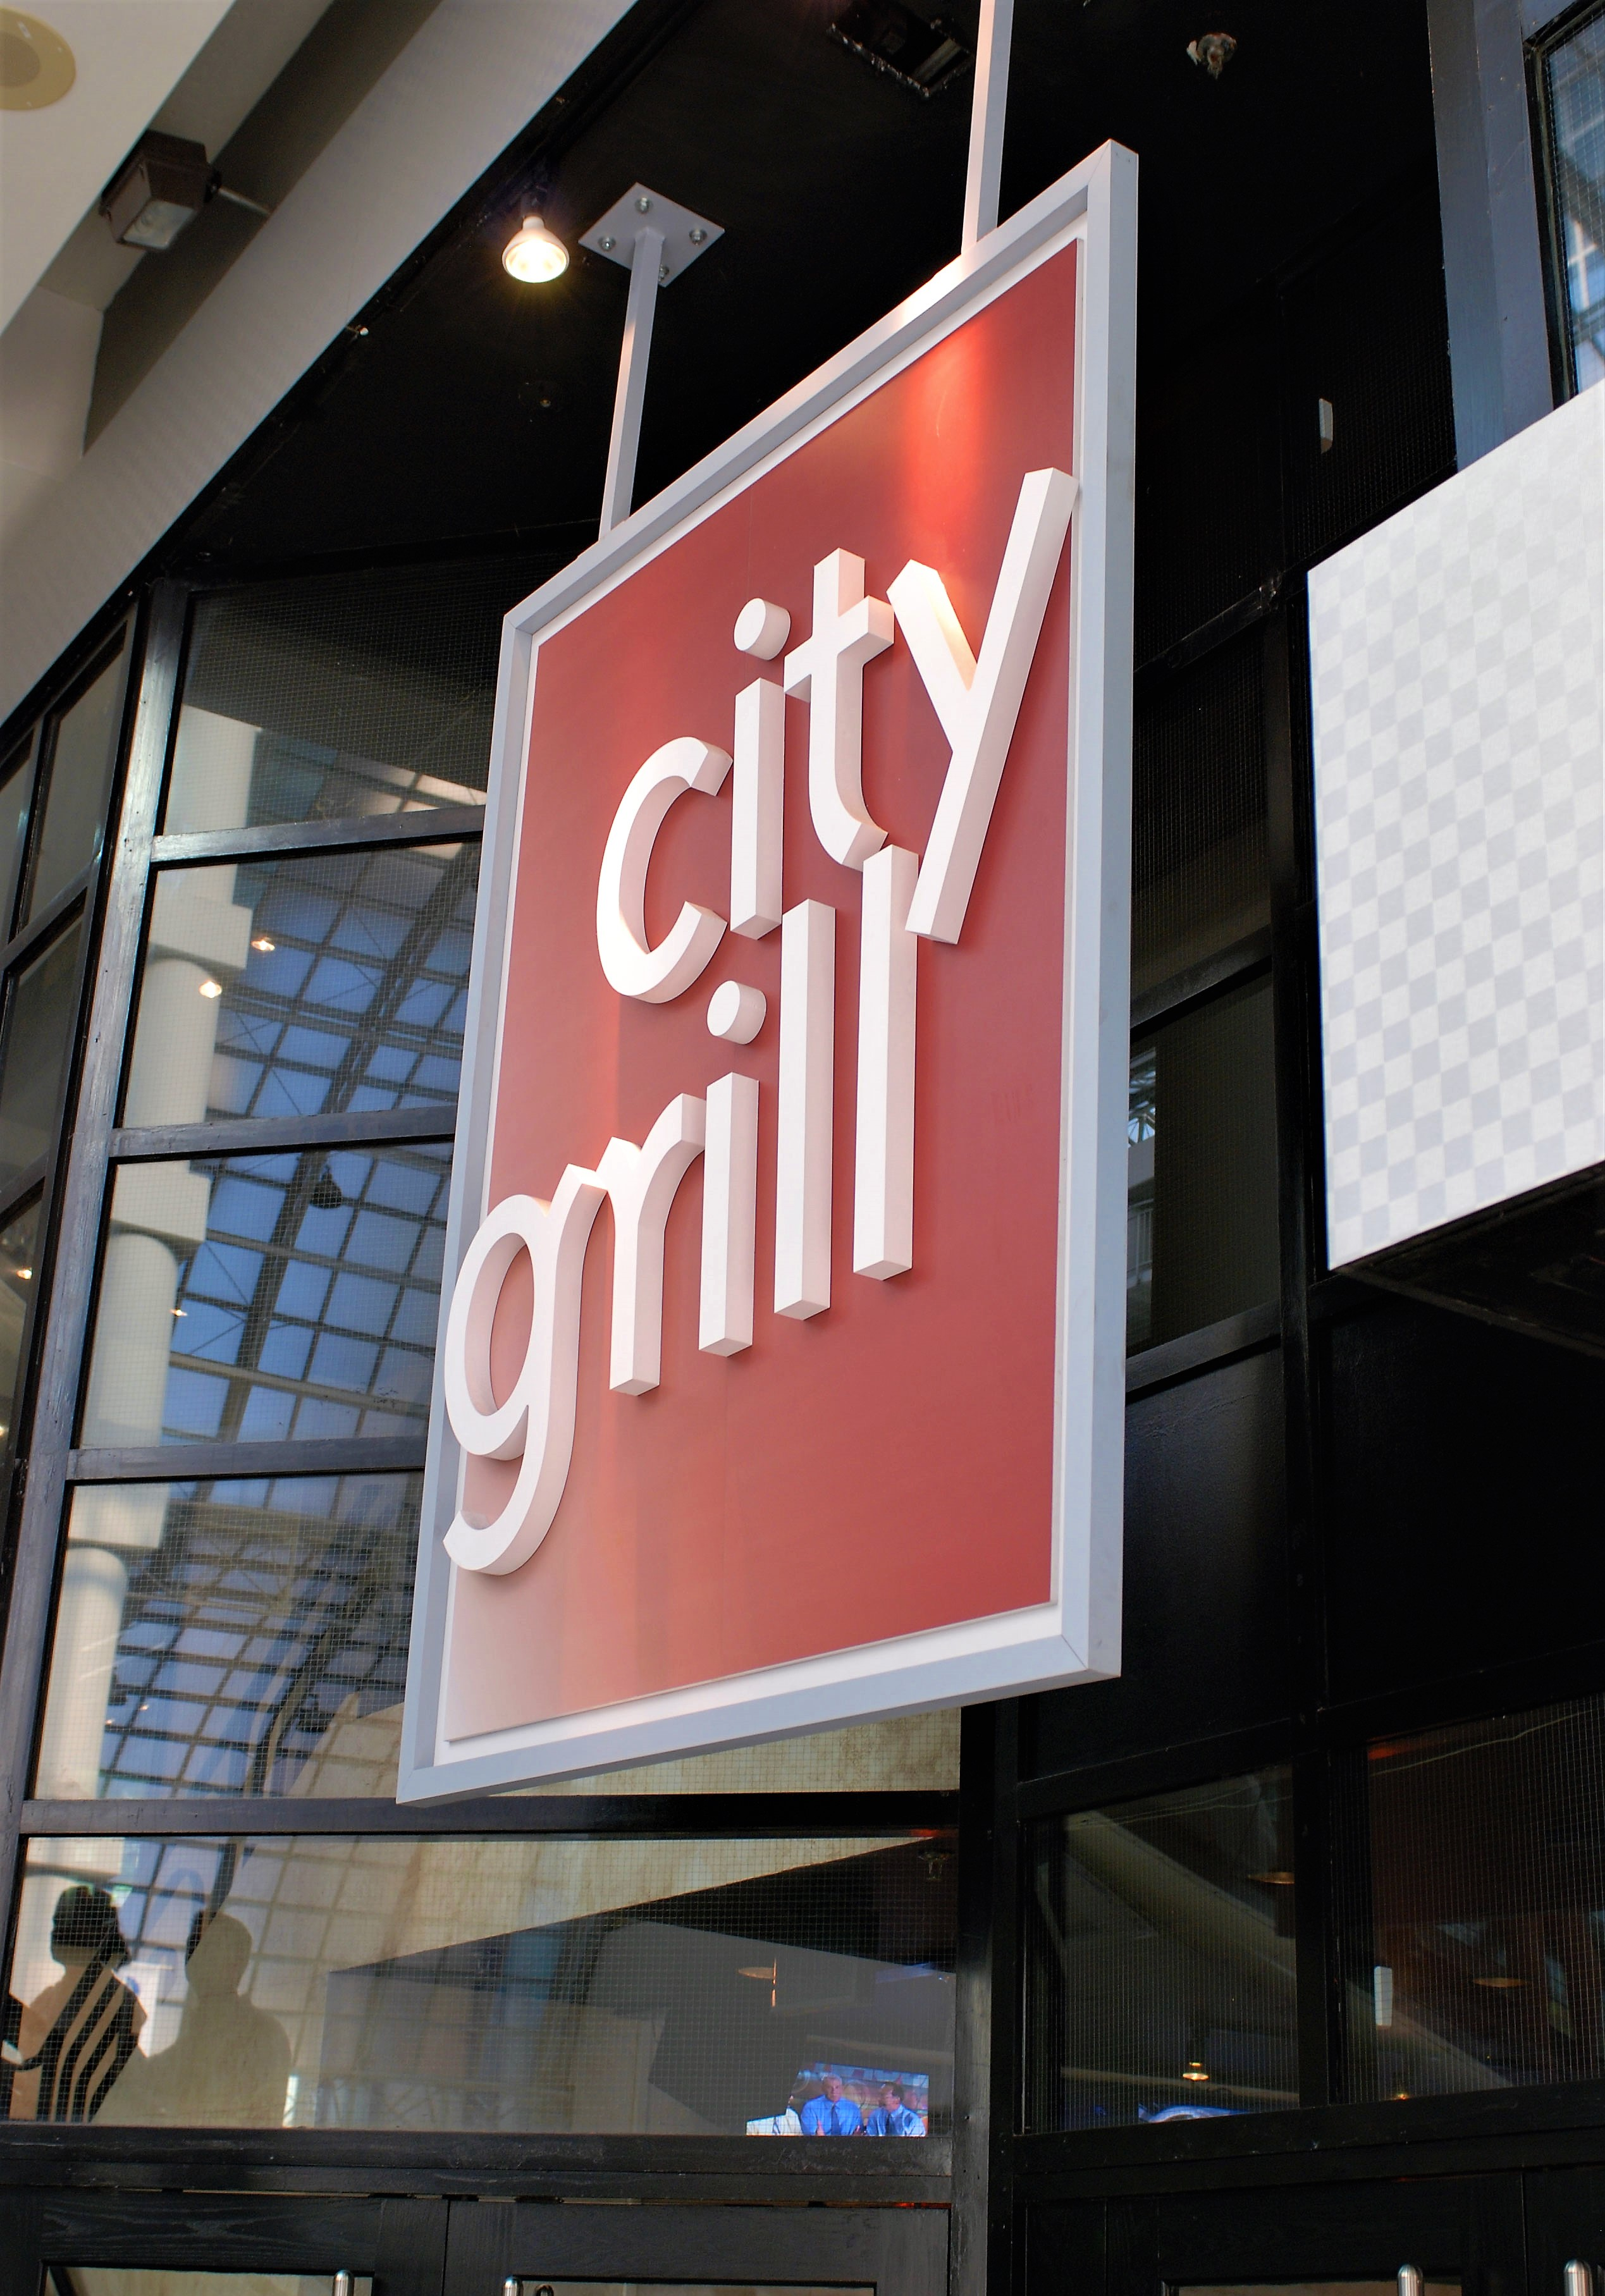 aluminum, sign, signage, led, illumination, paint finished, led bulb, city grill